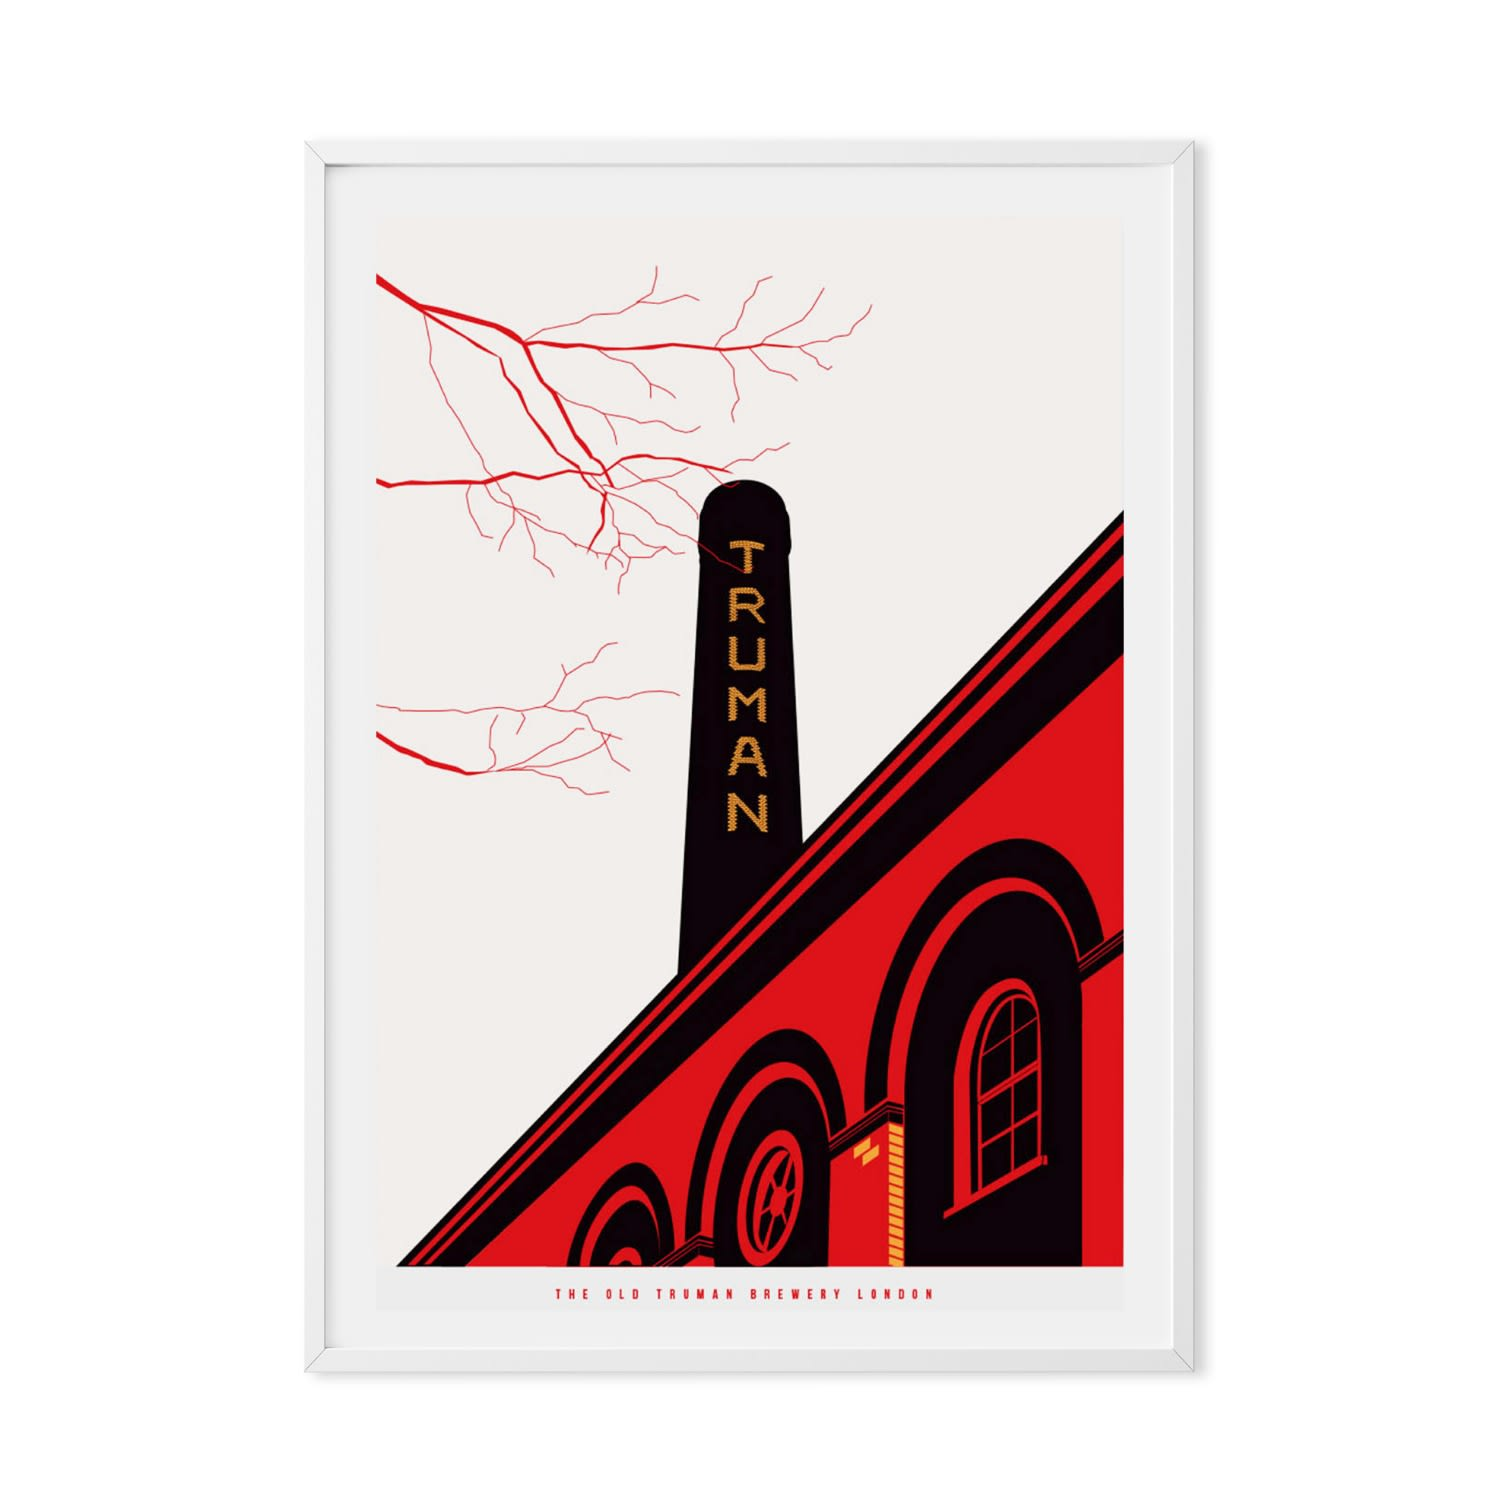 Prints of London The Old Truman Brewery Illustrated Art Print